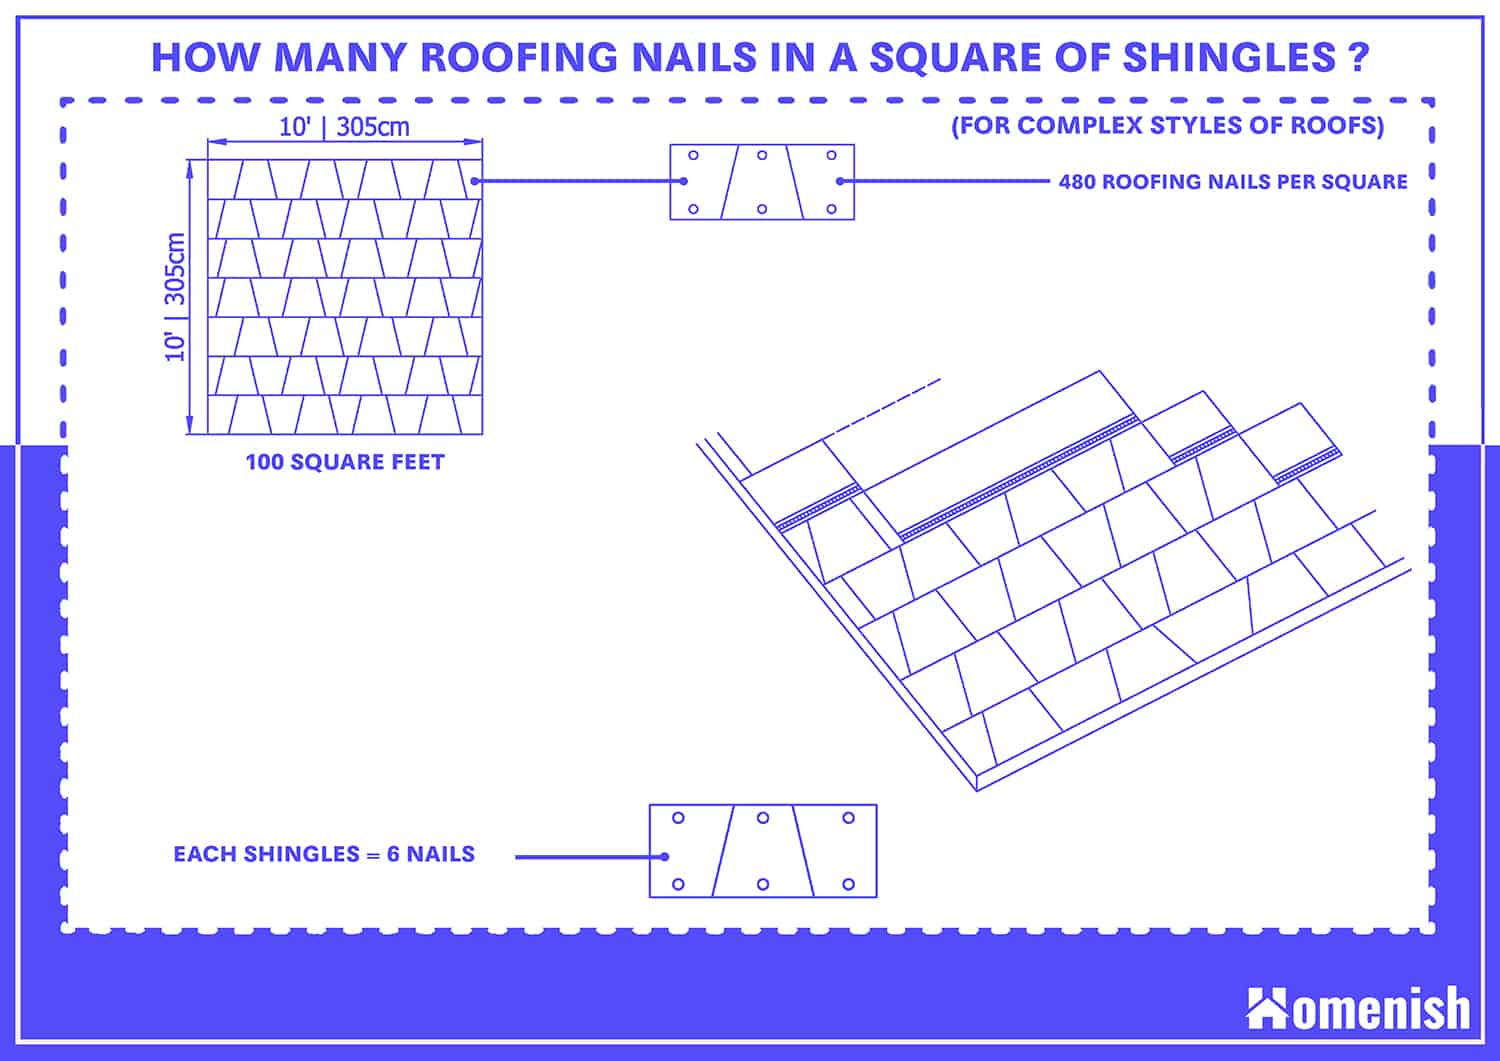 How many Roofing Nails in a Square of Shingles? (For Complex styles of roofs)